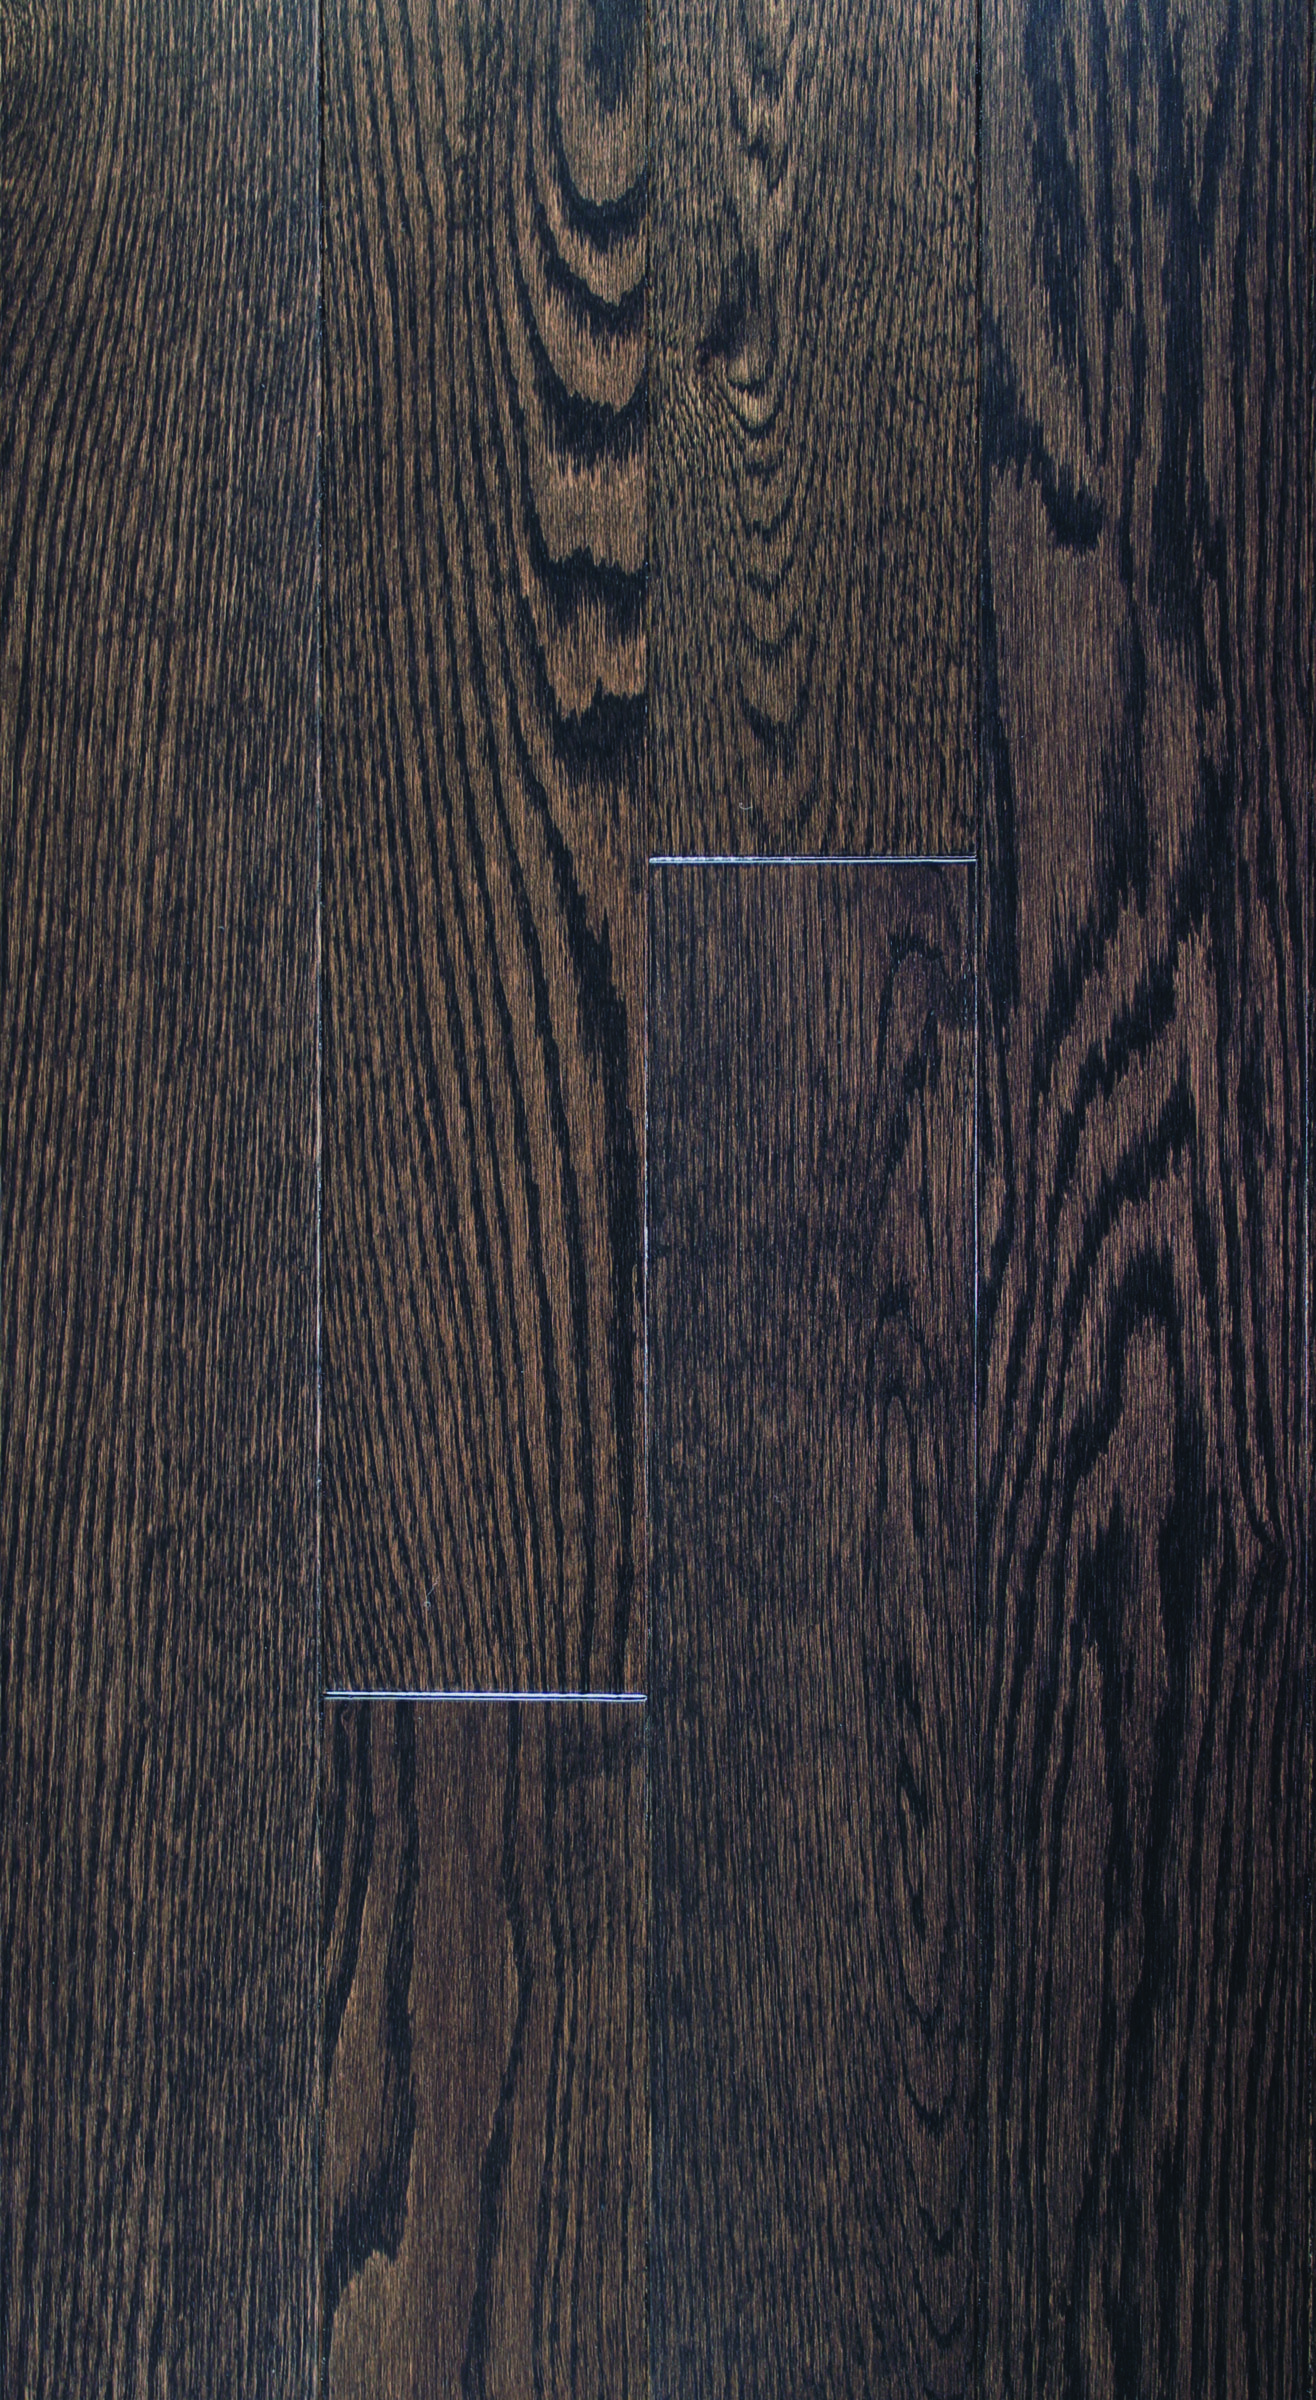 Maine Traditions Hardwood Flooring Classic Collection Red Oak Brownie Available In 3 1 4 4 Widths Hardwood Floors Solid Hardwood Floors Maple Floors